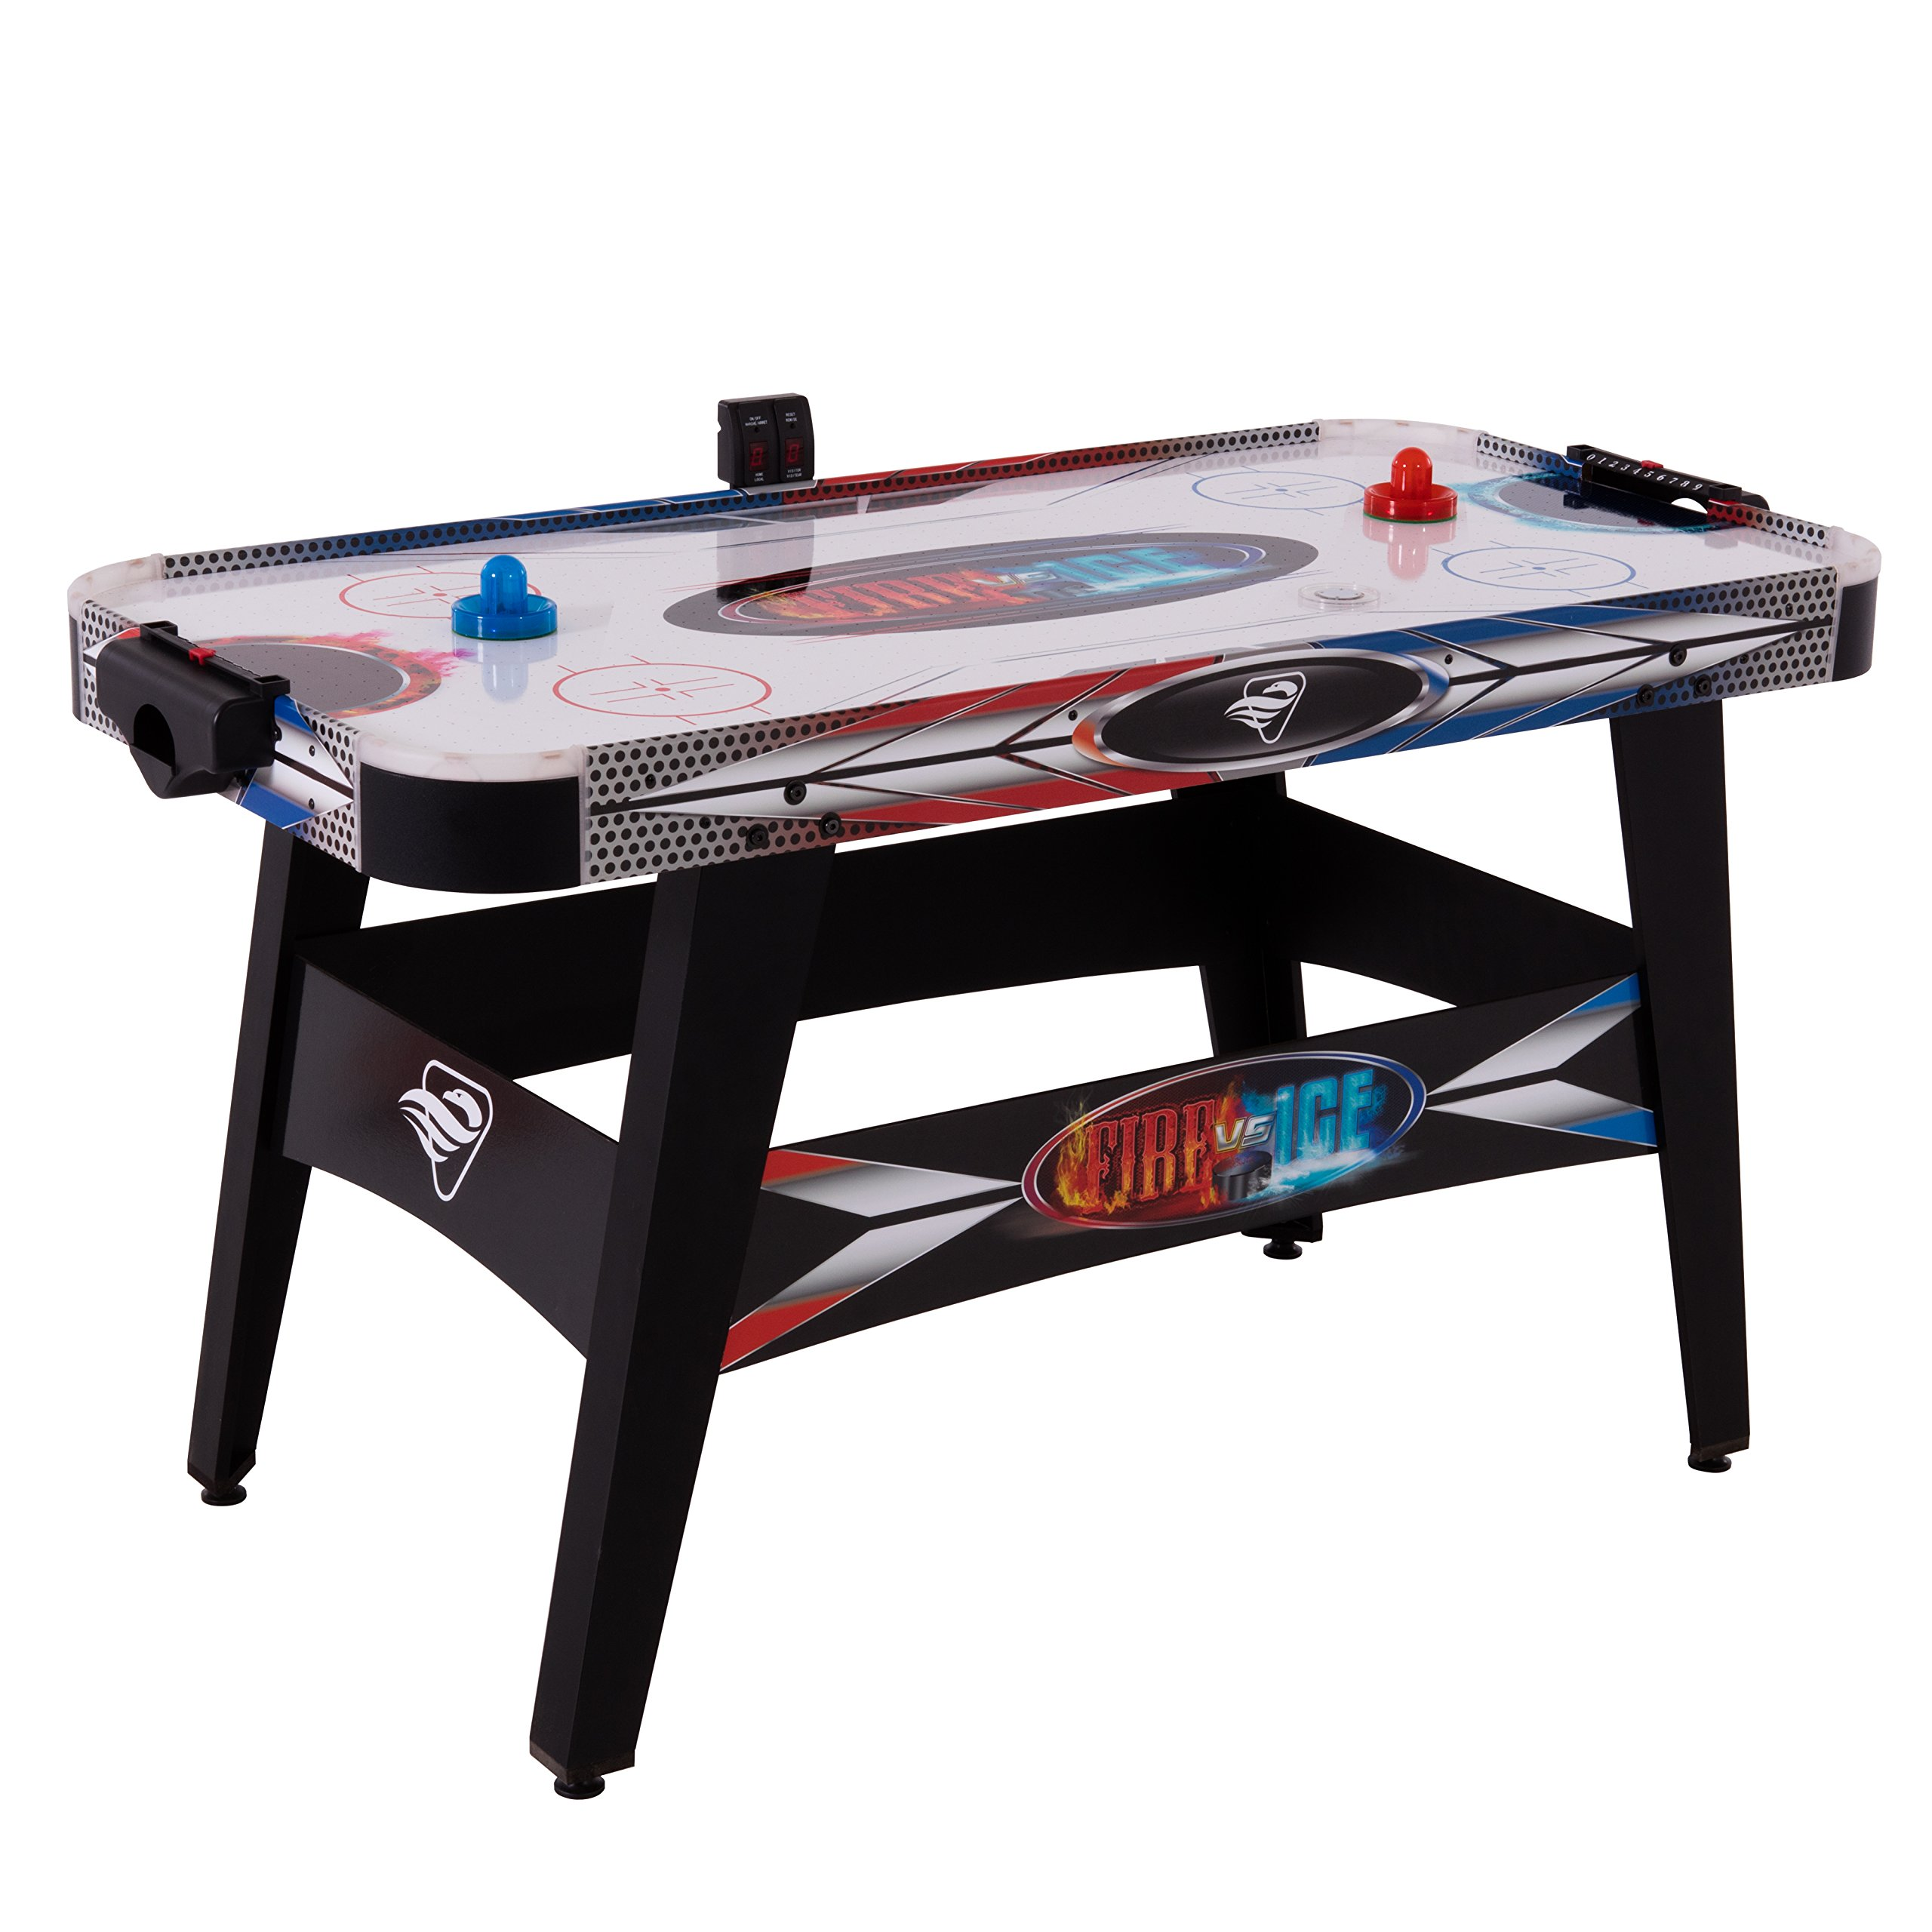 Triumph Fire 'n Ice LED Light-Up 54'' Air Hockey Table Includes 2 LED Hockey Pushers and LED Puck by Triumph Sports